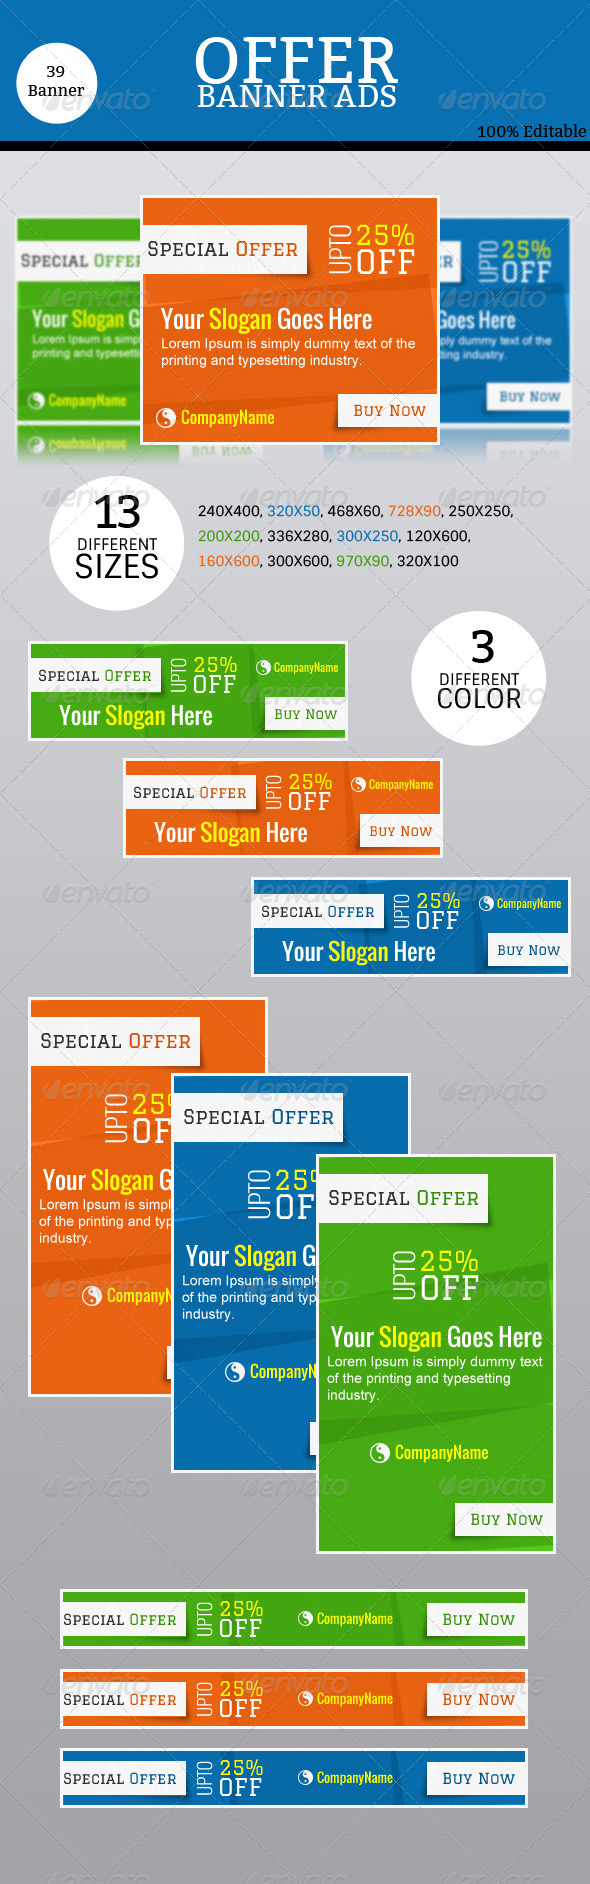 offer banner ads banner shops and shopping offer banner ads template psd buy and graphicriver